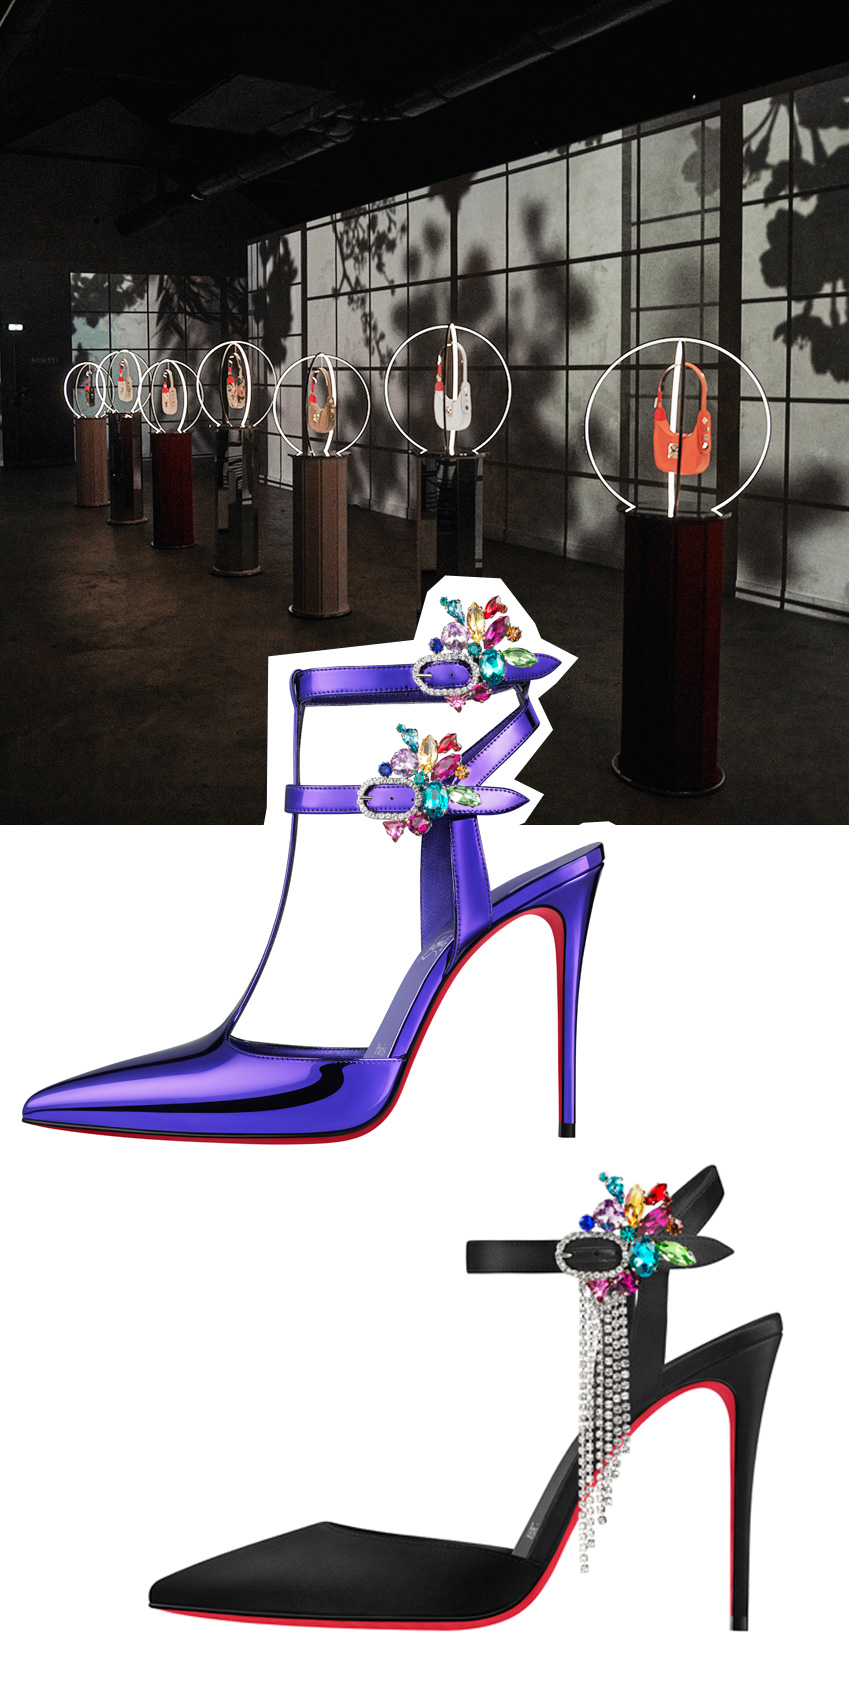 Loubillusions is Christian Louboutin's Spring Summer 2022 collection